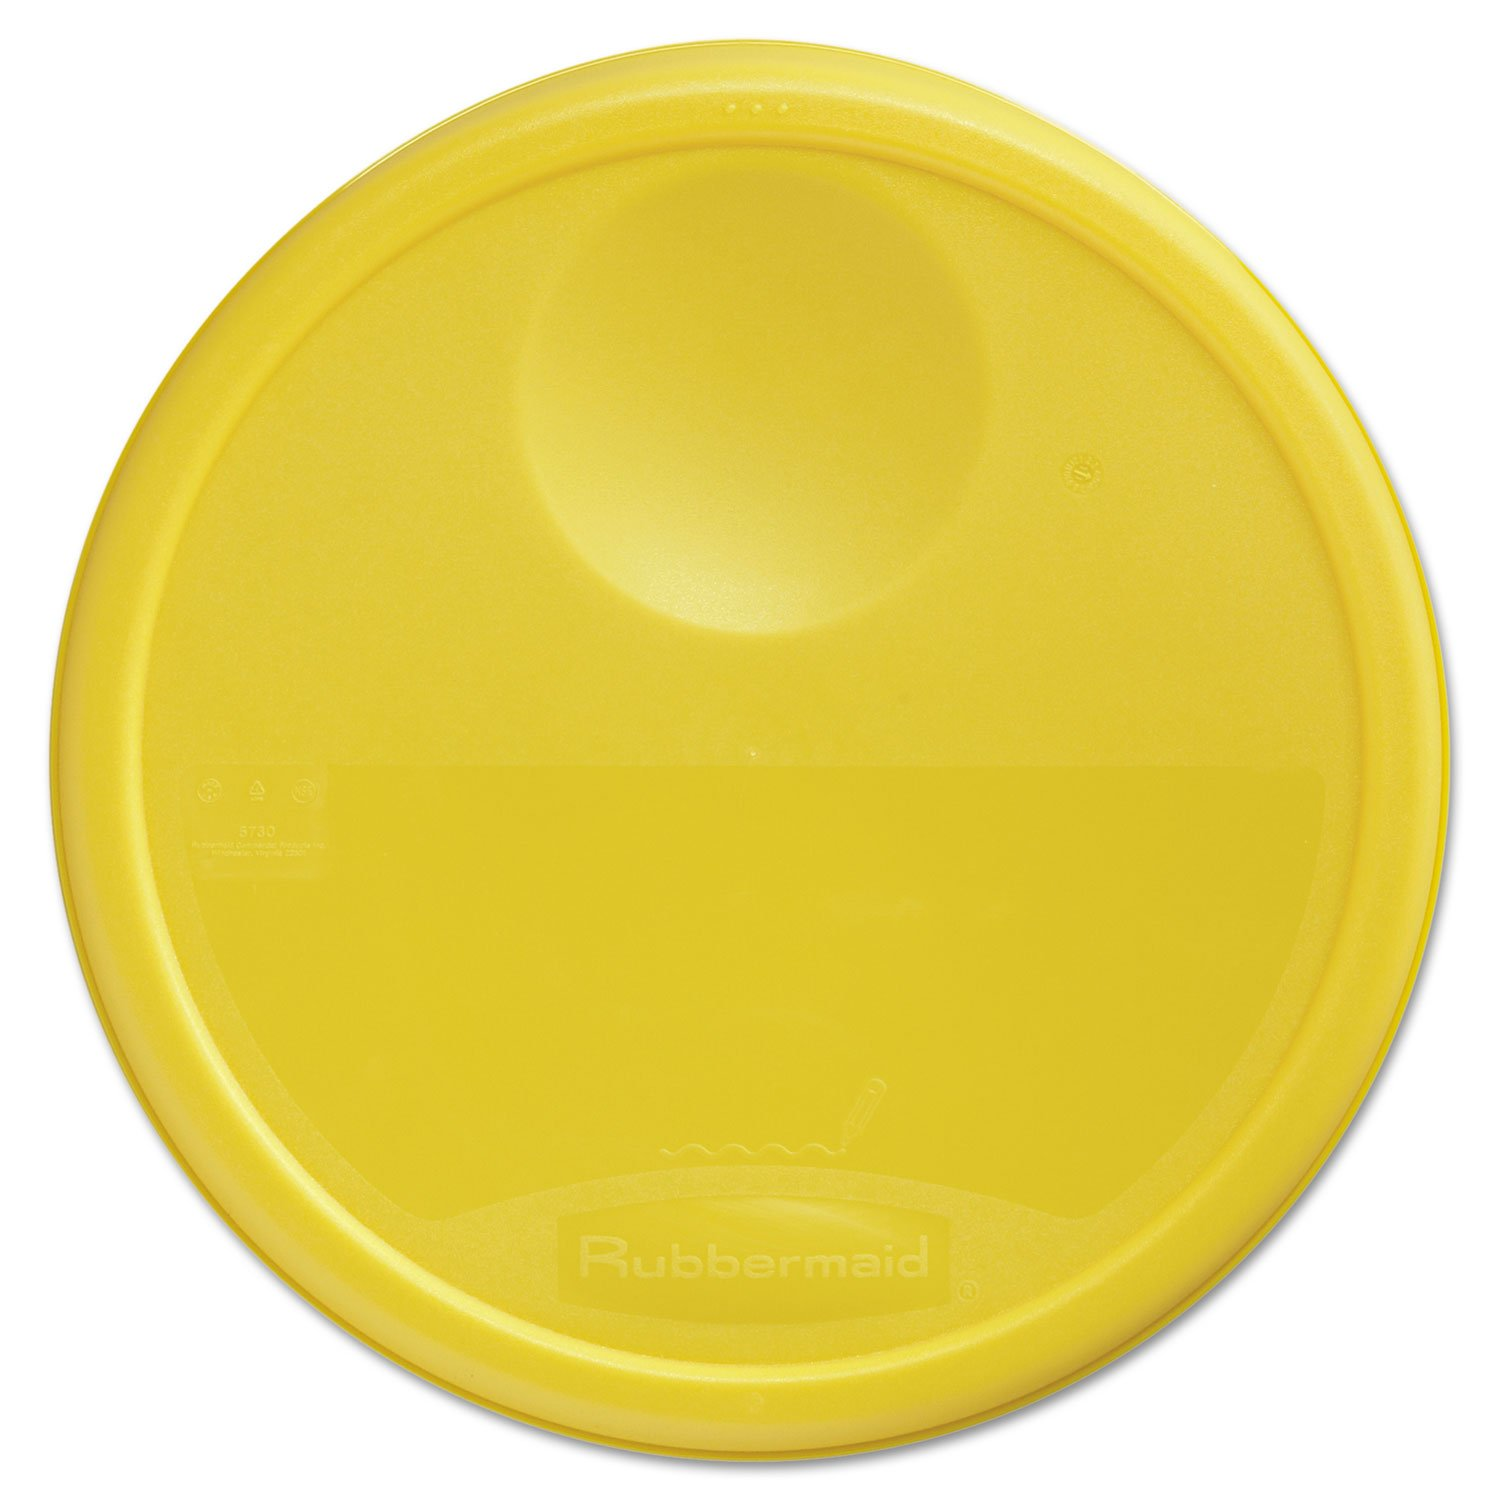 Rubbermaid Commercial 5730YEL Round Storage Container Lids 13 1/2 dia x 2 3/4h Yellow by Rubbermaid Commercial